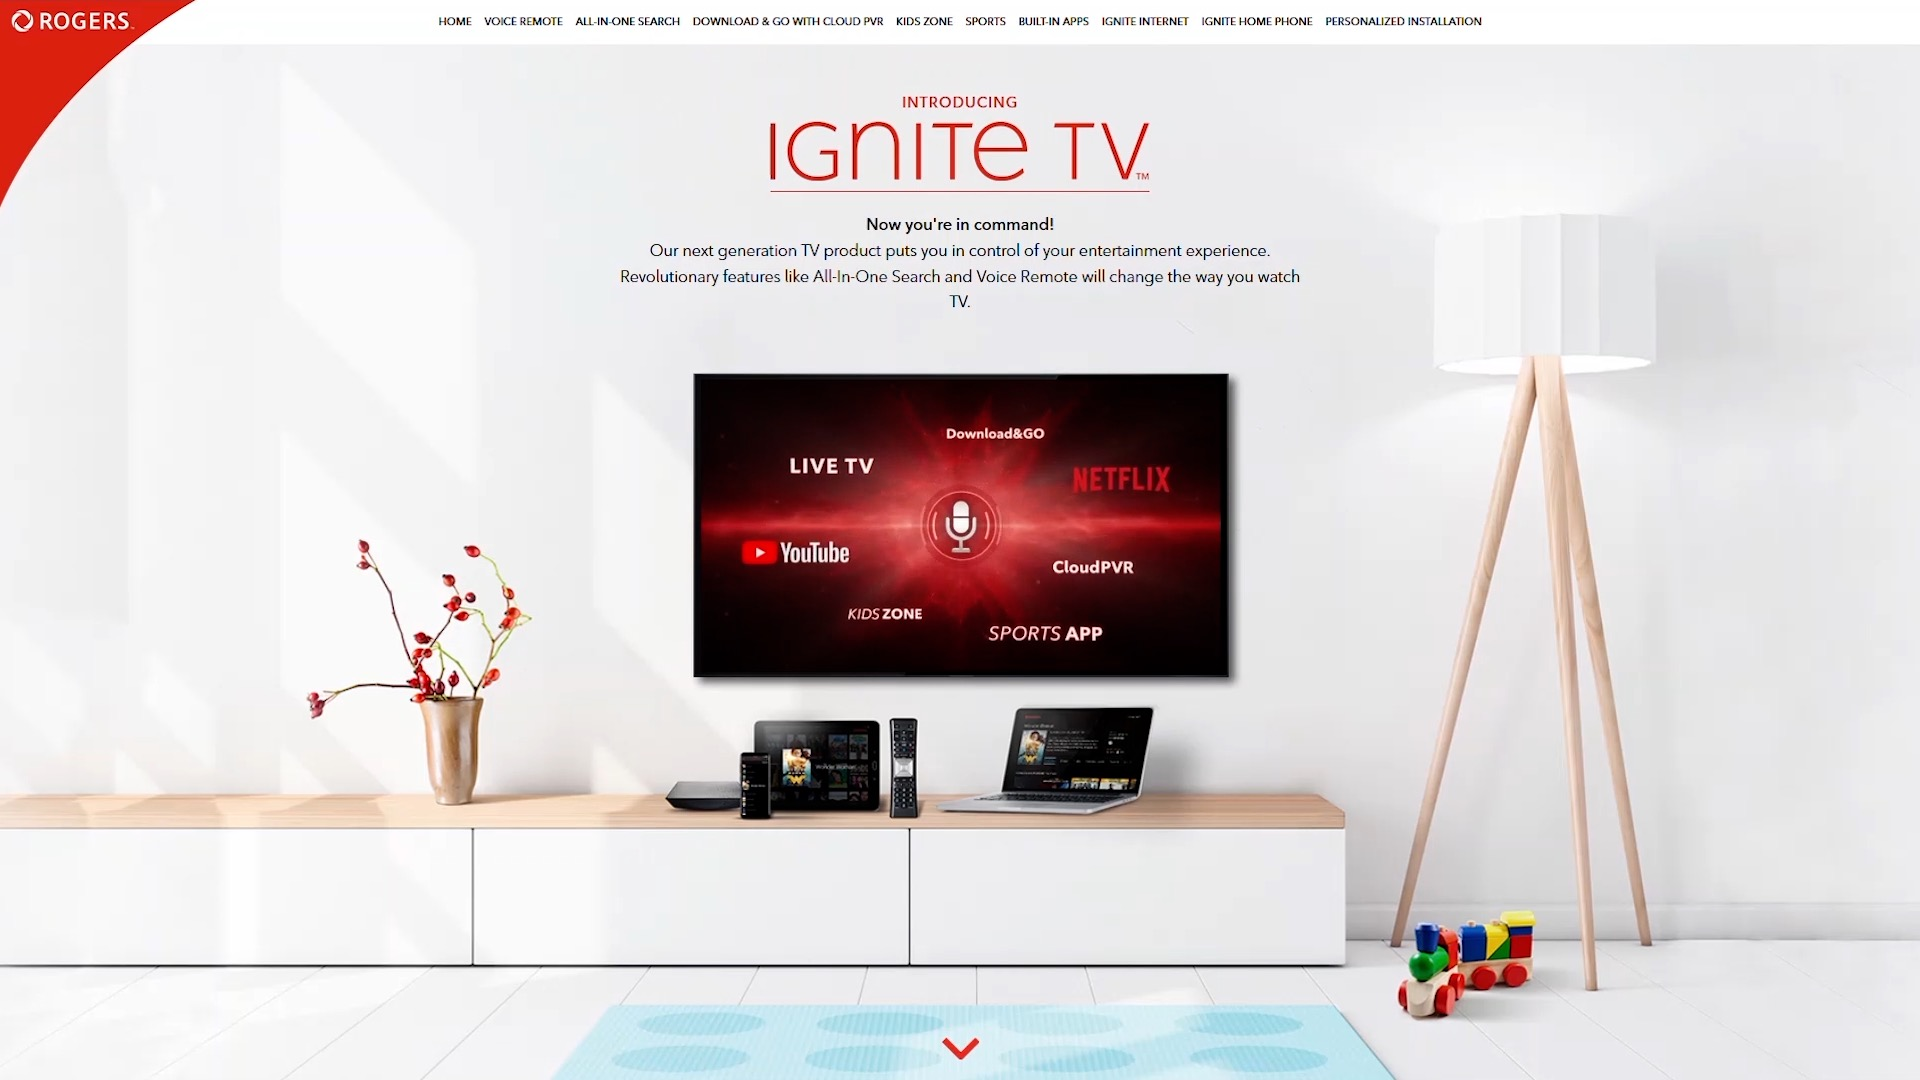 Ignite TV Demo